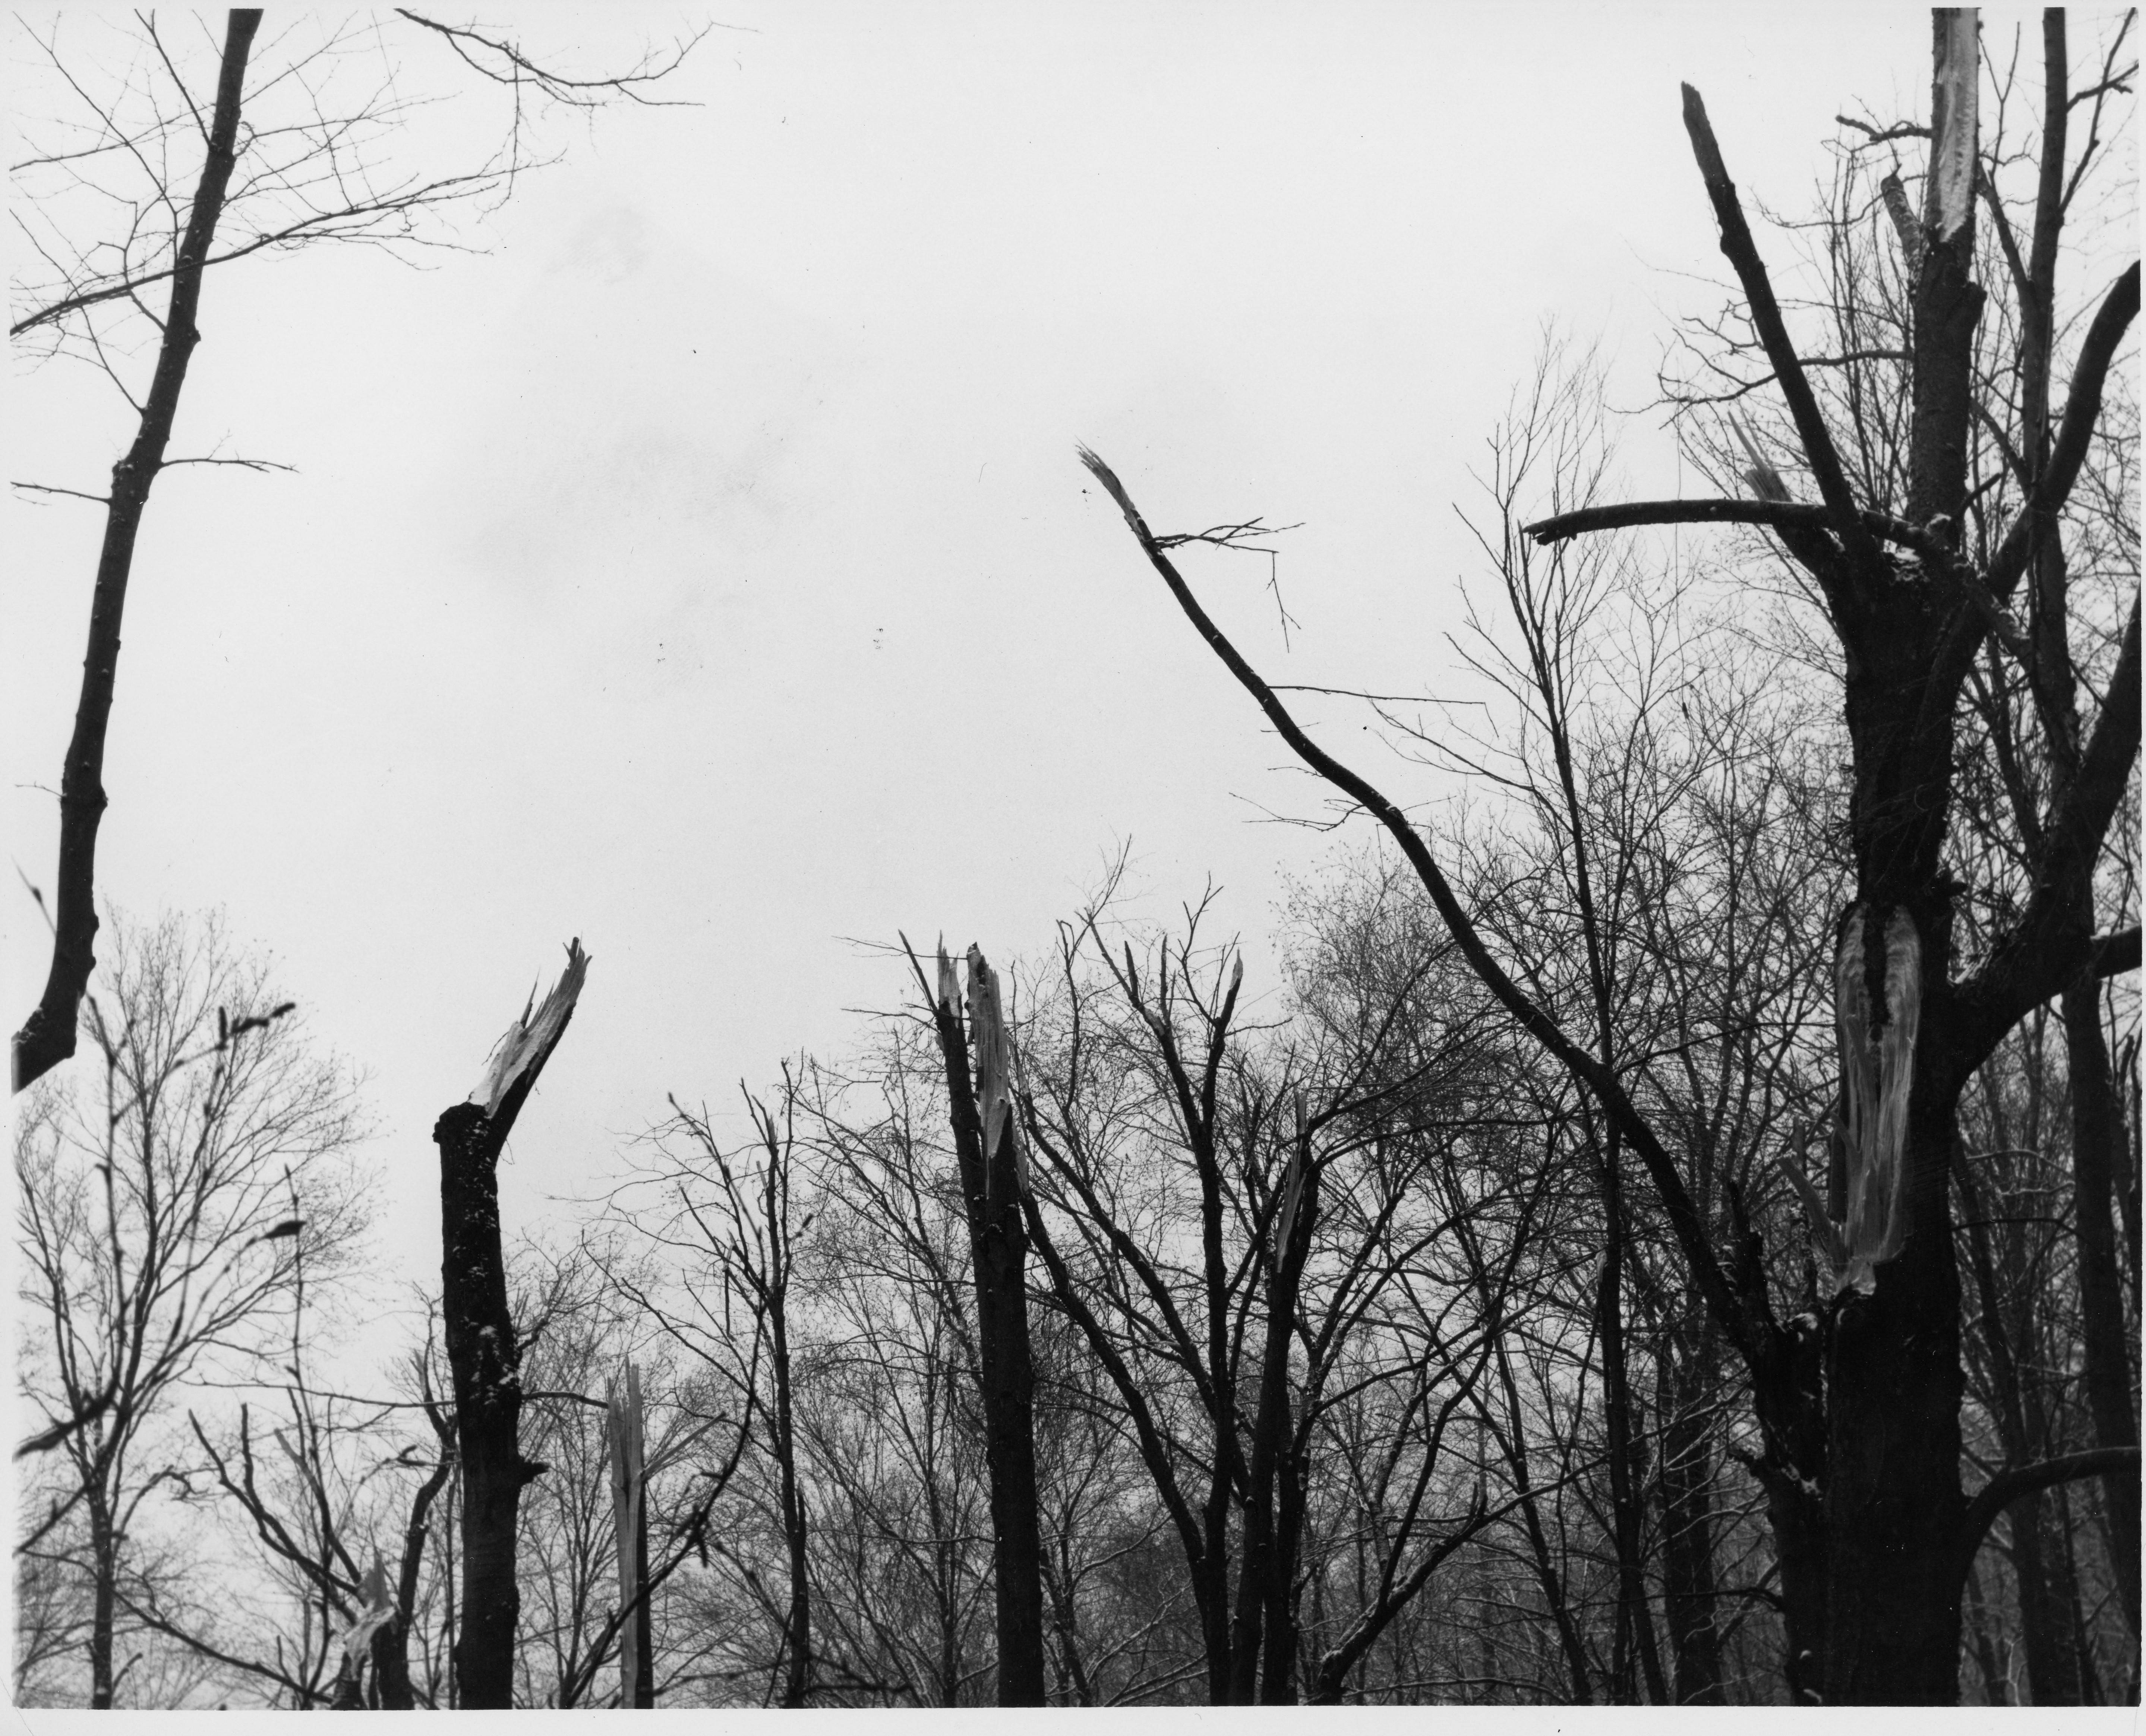 Impact with trees. Photo courtesy of the Williamsport Sun Gazette archive.